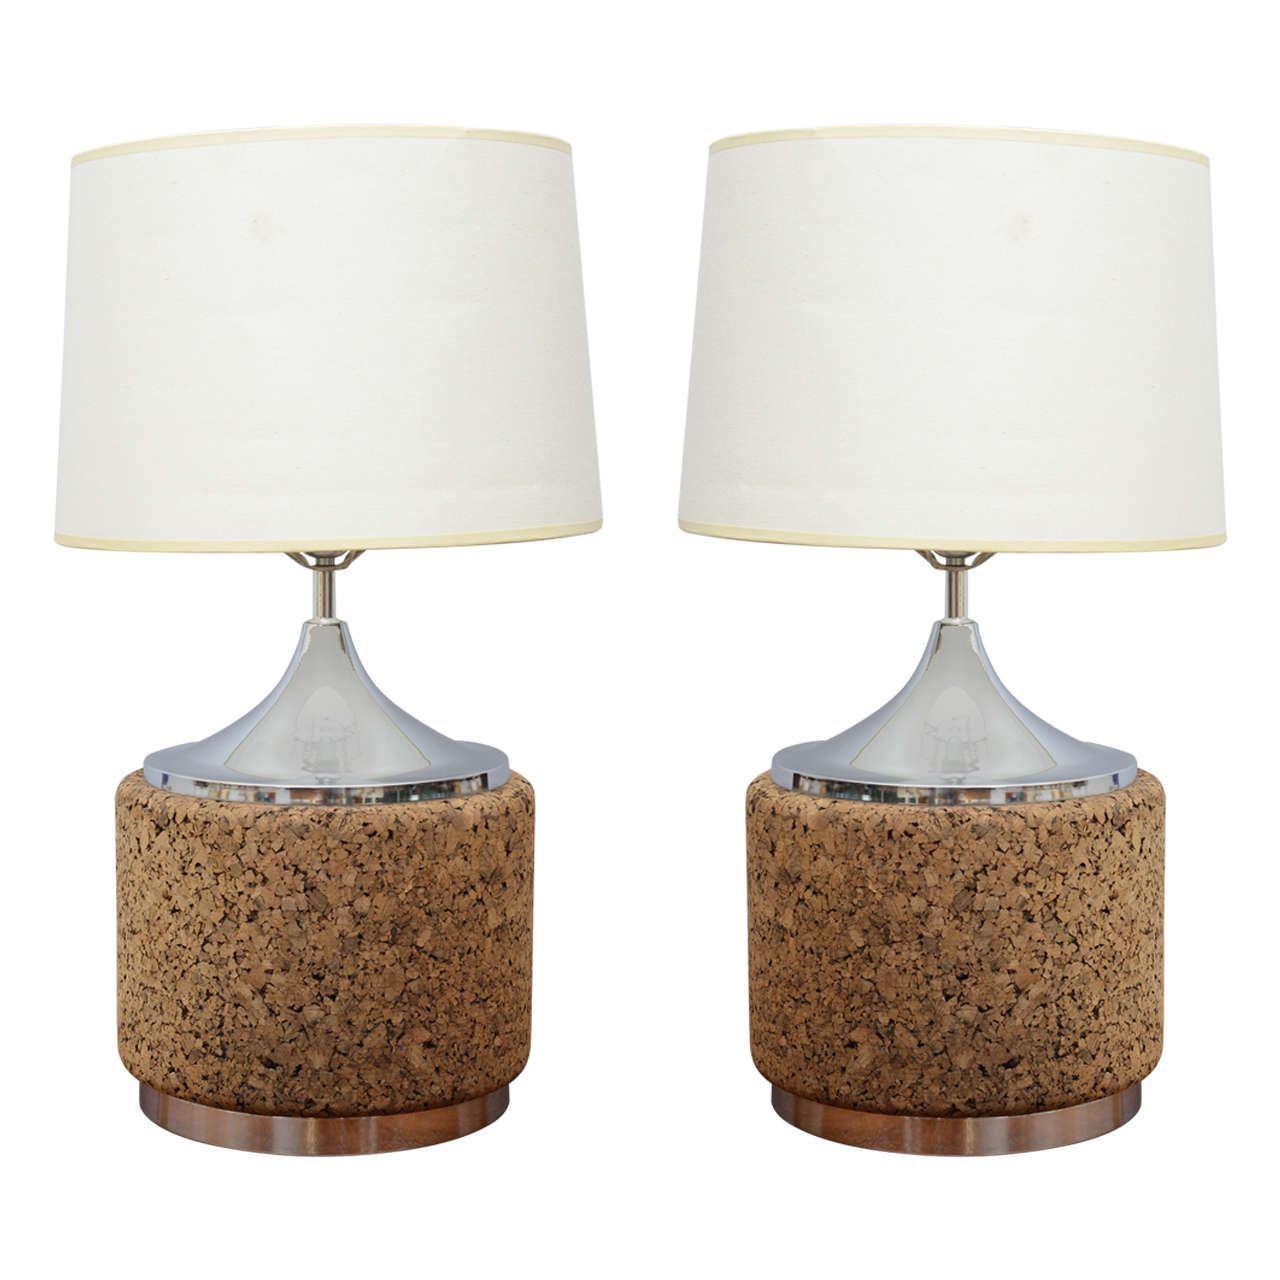 Beautiful Pair Of Cork And Chrome Table Lamps  1970s USA 1